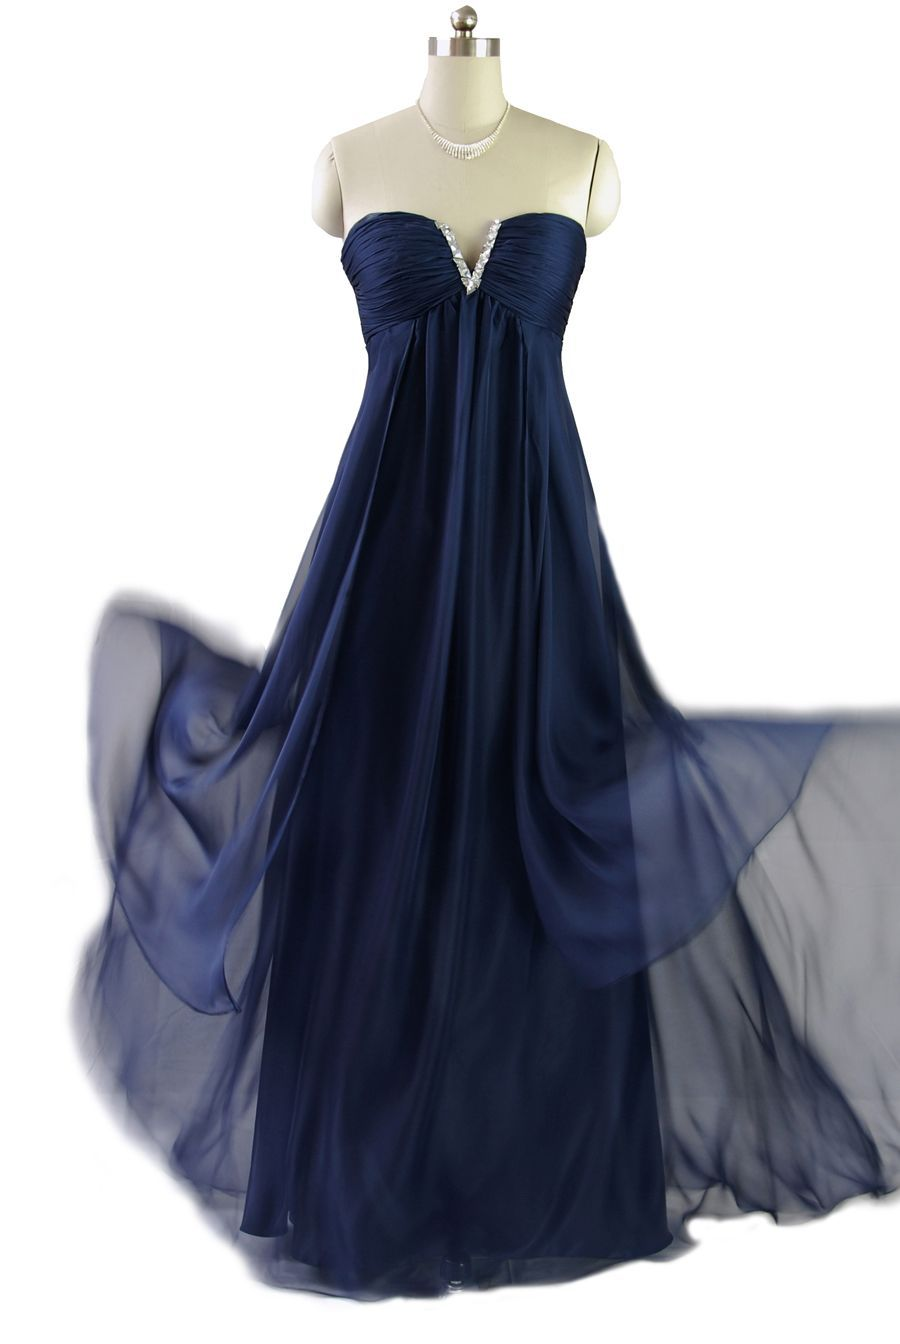 Qpid showgirl midnight blue strapless maxi gown evening dress prom